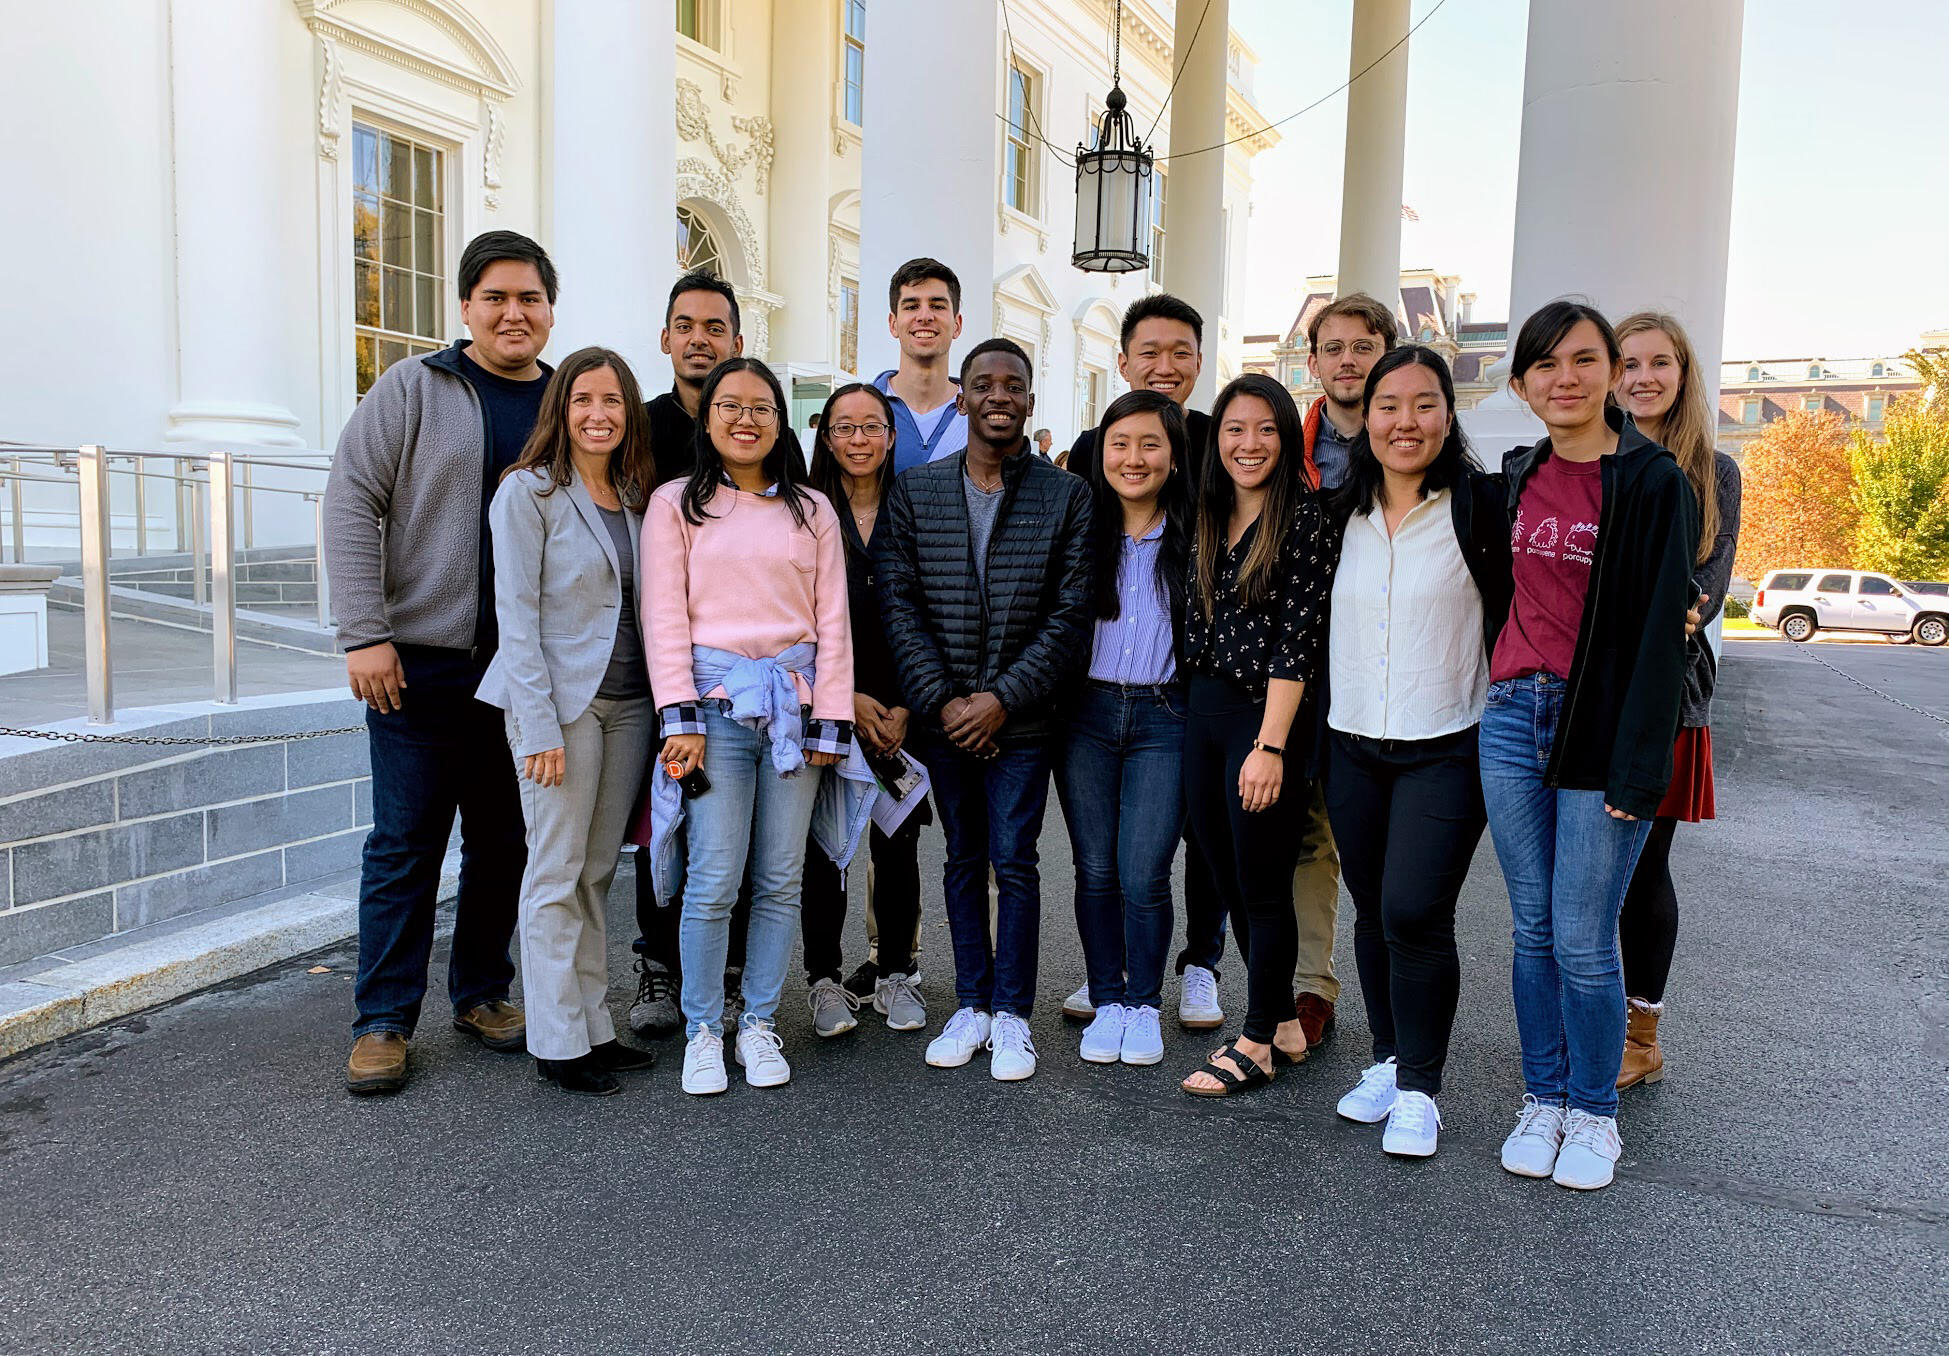 The group wears casual clothes, posing next to an entrance to the White House